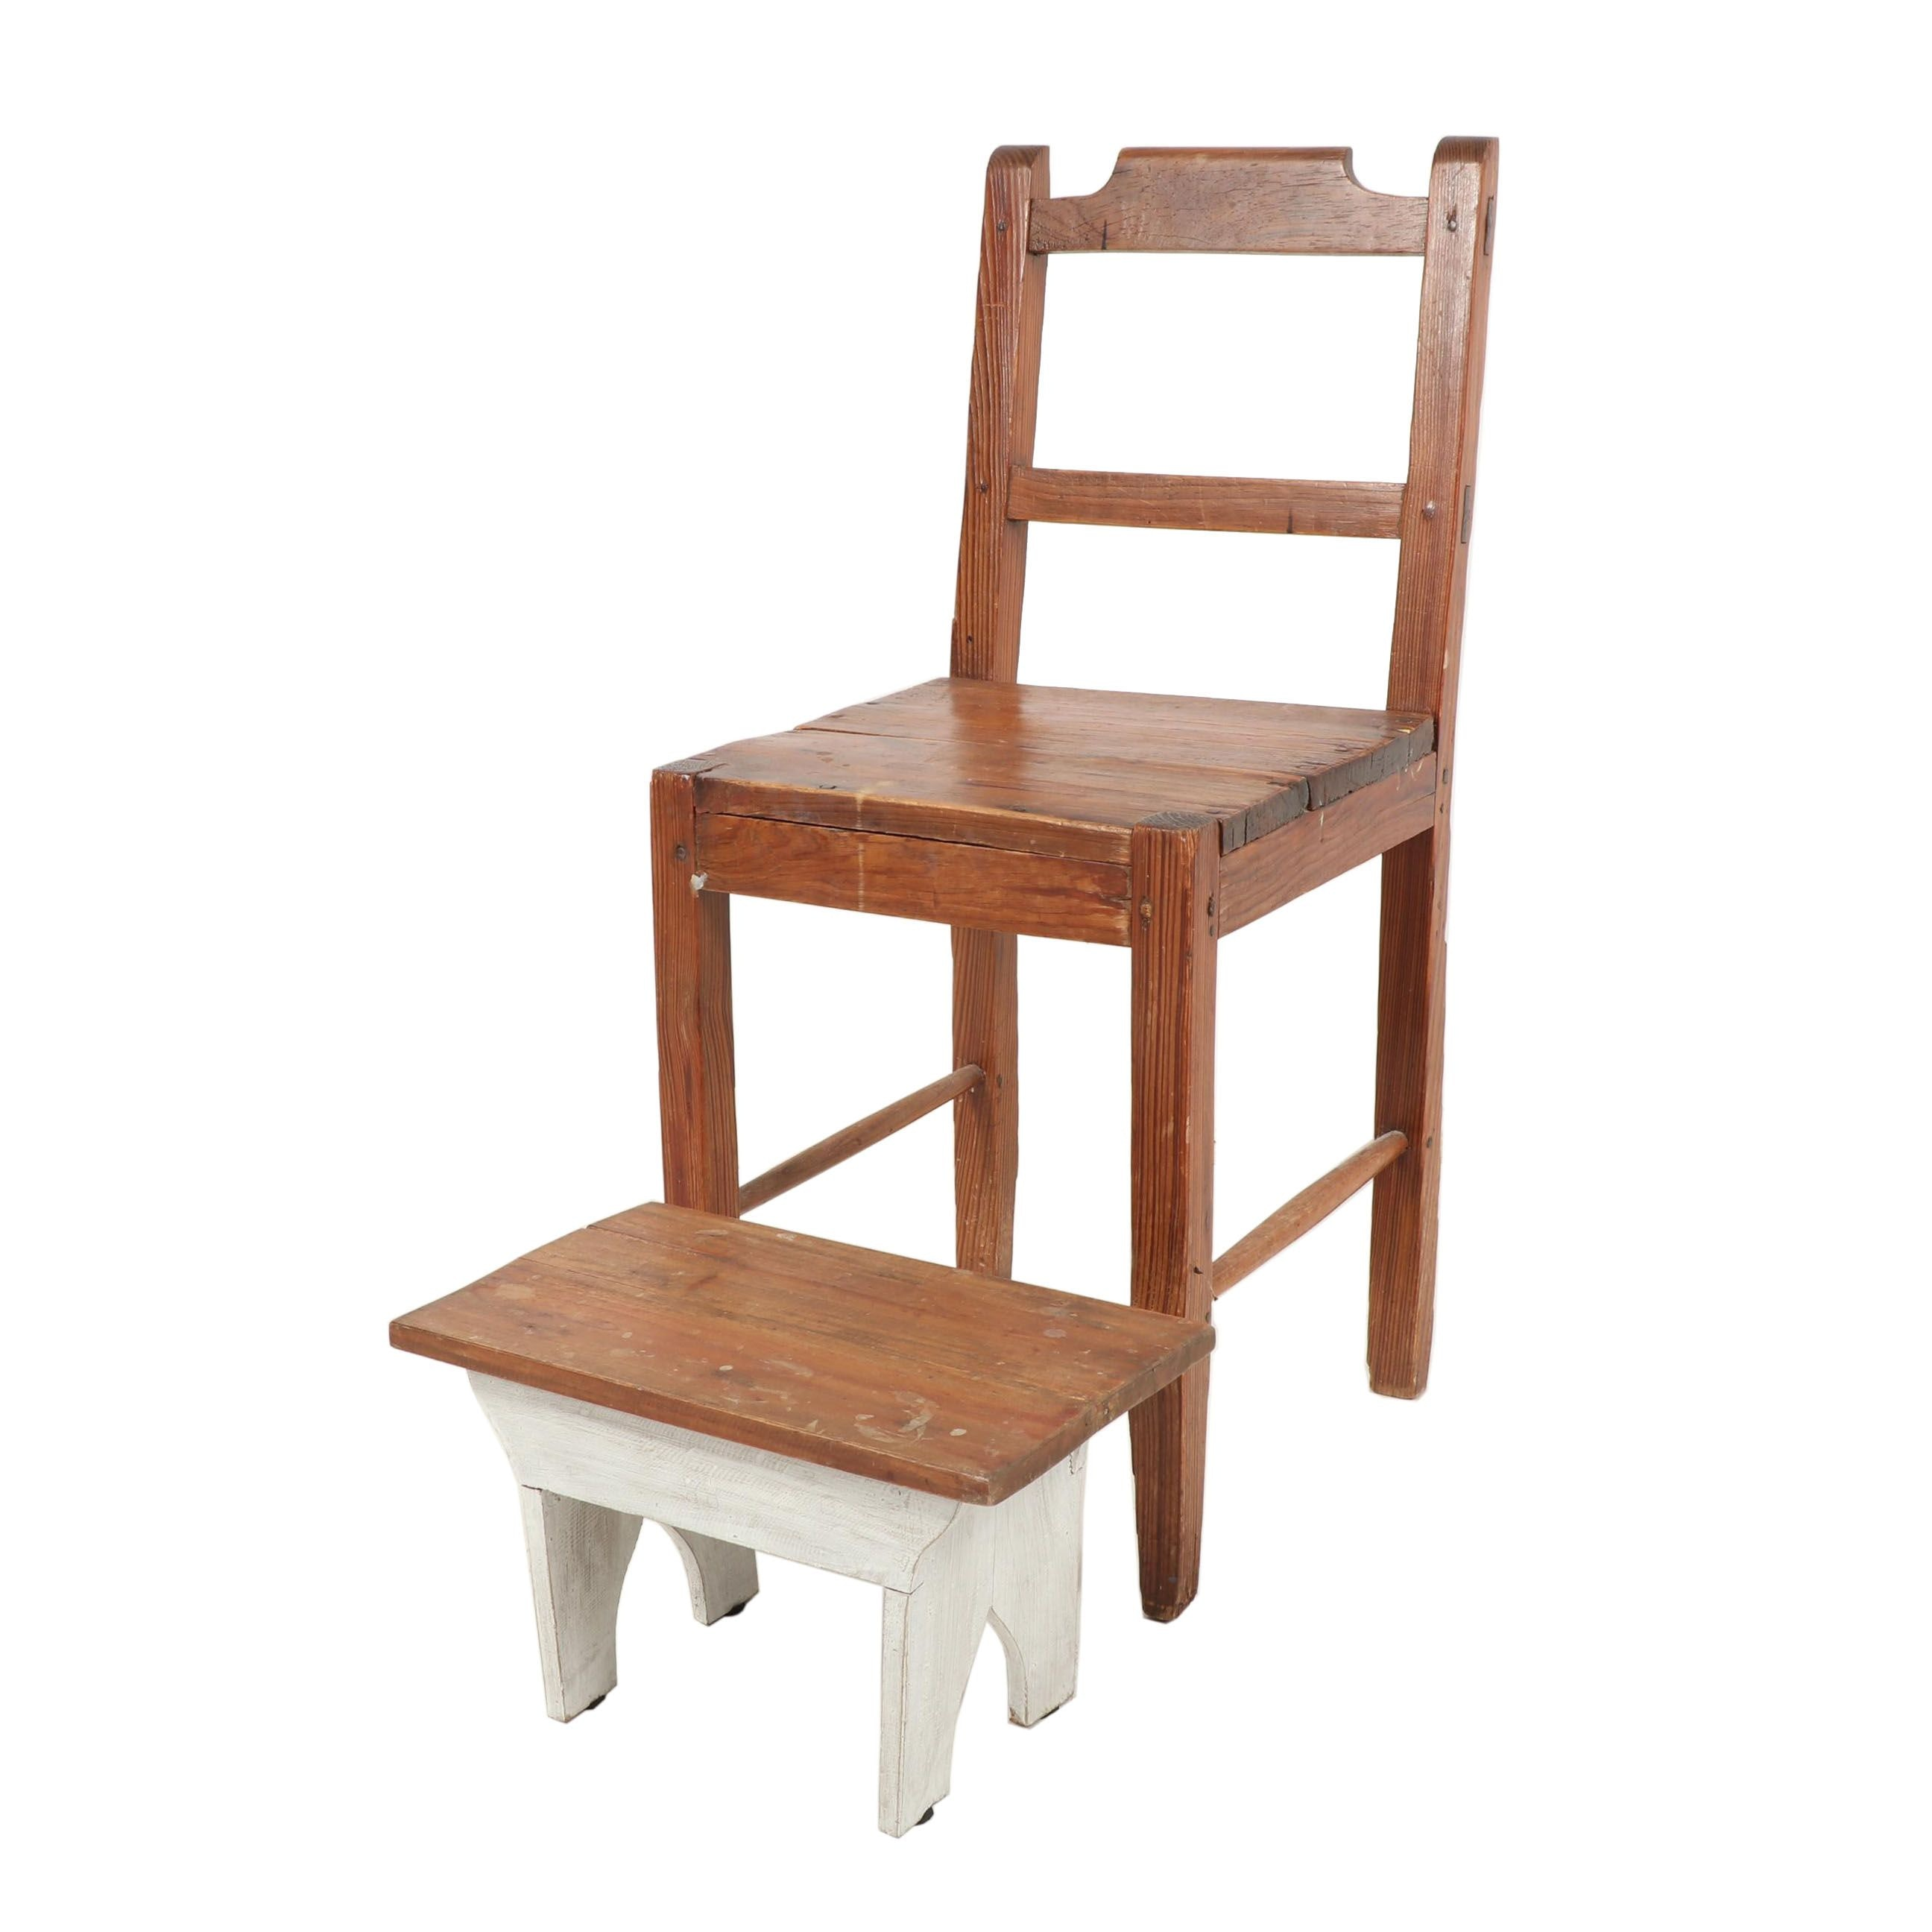 Primitive Ladderback Chair with Footstool, 19th Century